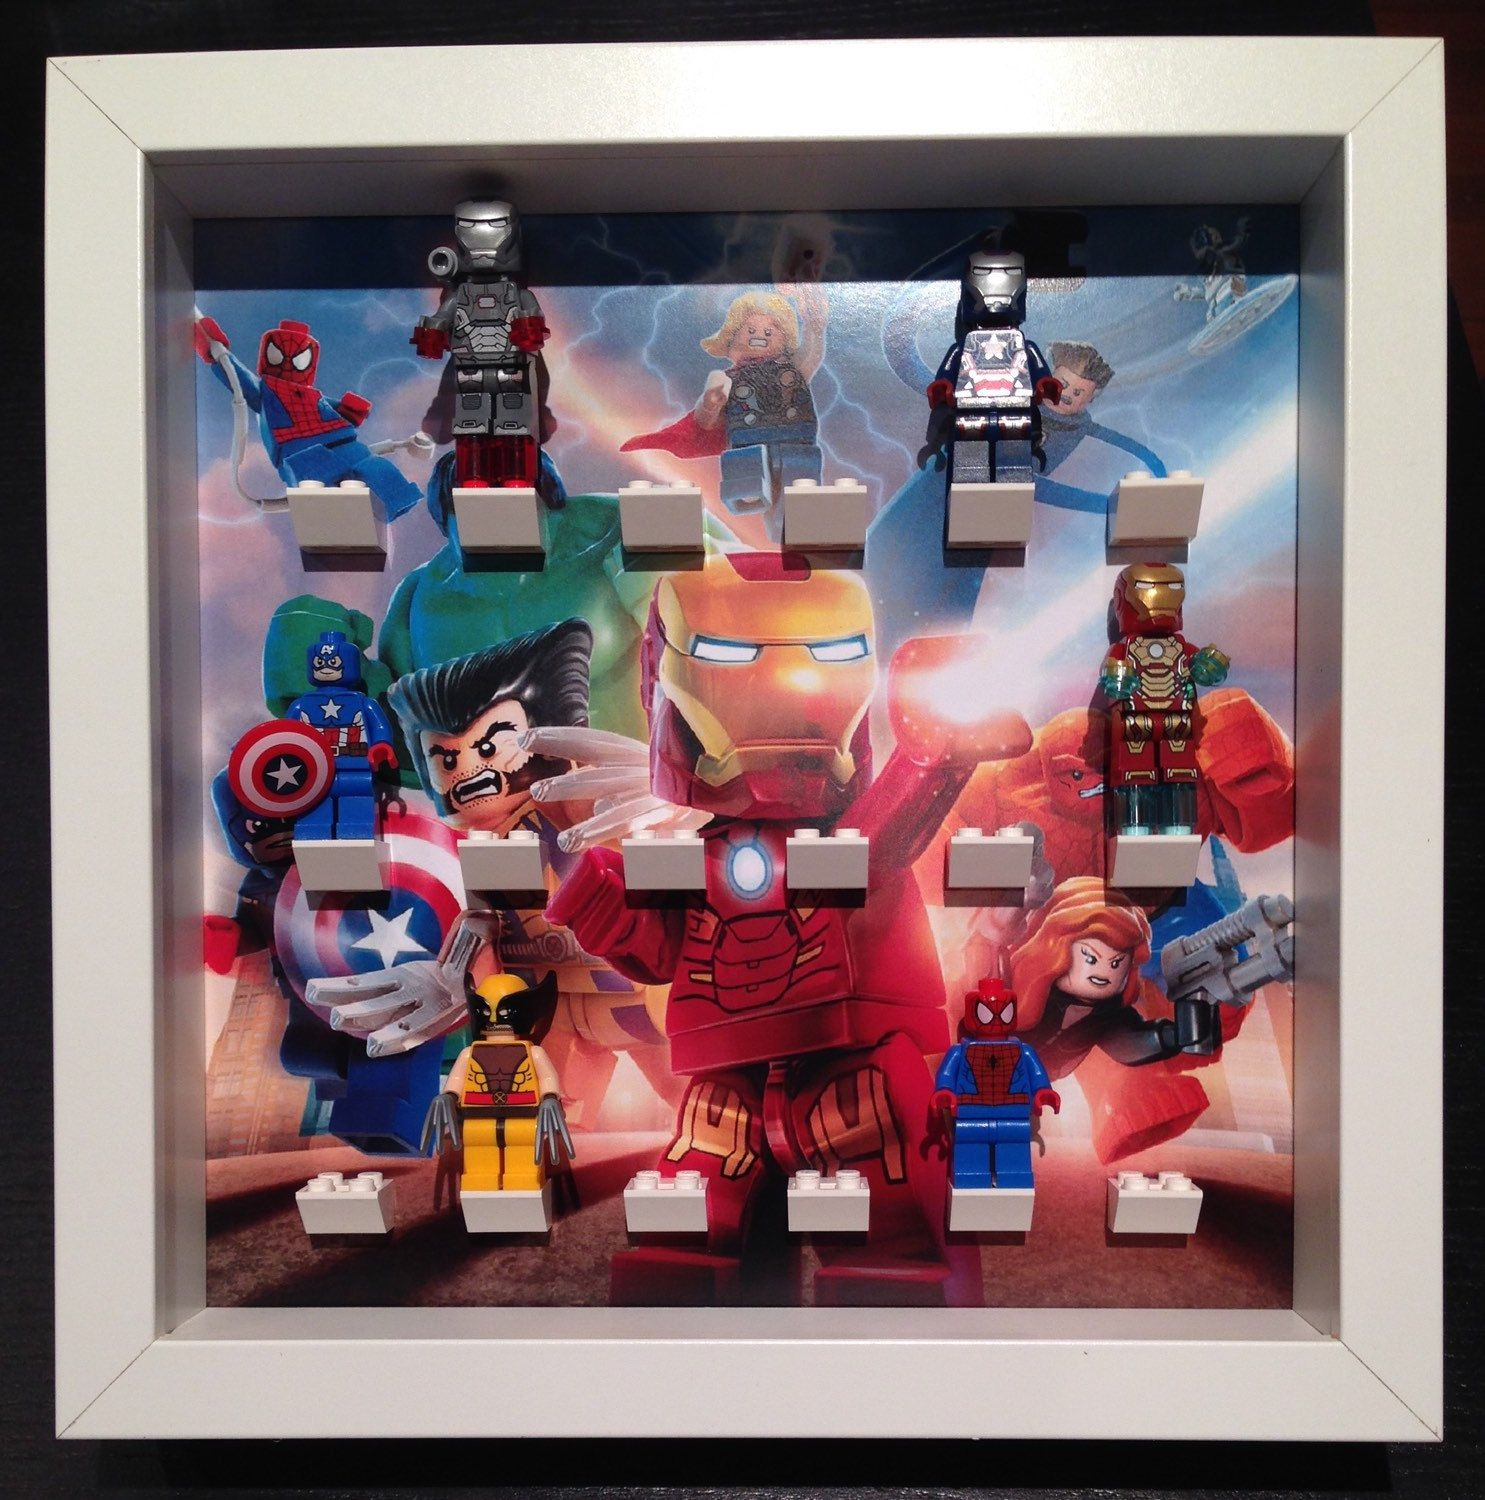 Lego Minifigure Display Frame Marvel Comics Heroes and Villains superheroes